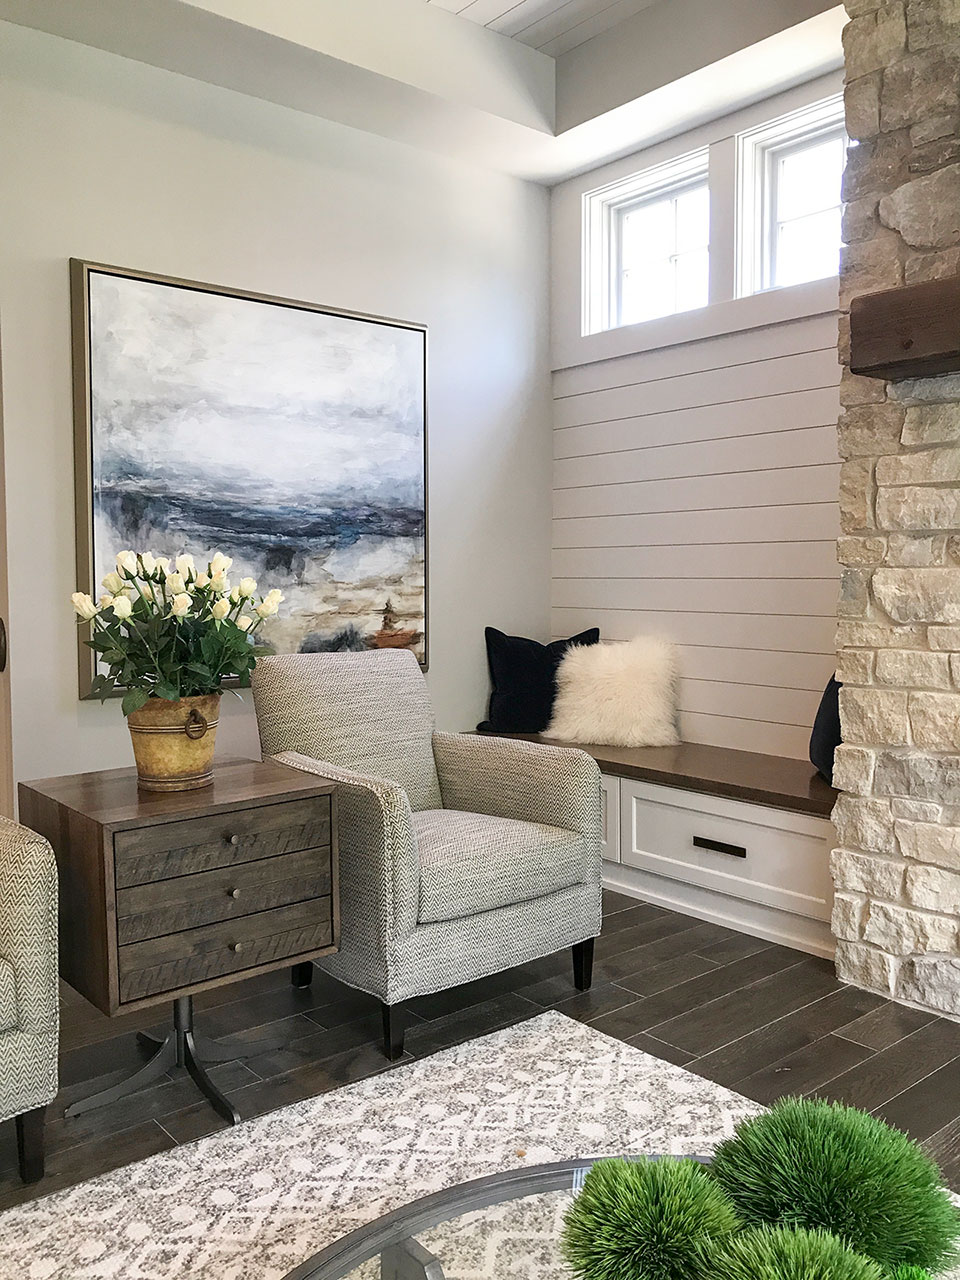 Artisan home tour living room with shiplap ceiling and walls, neutrals with blue accents, clerestory windows, cultured stone fireplace